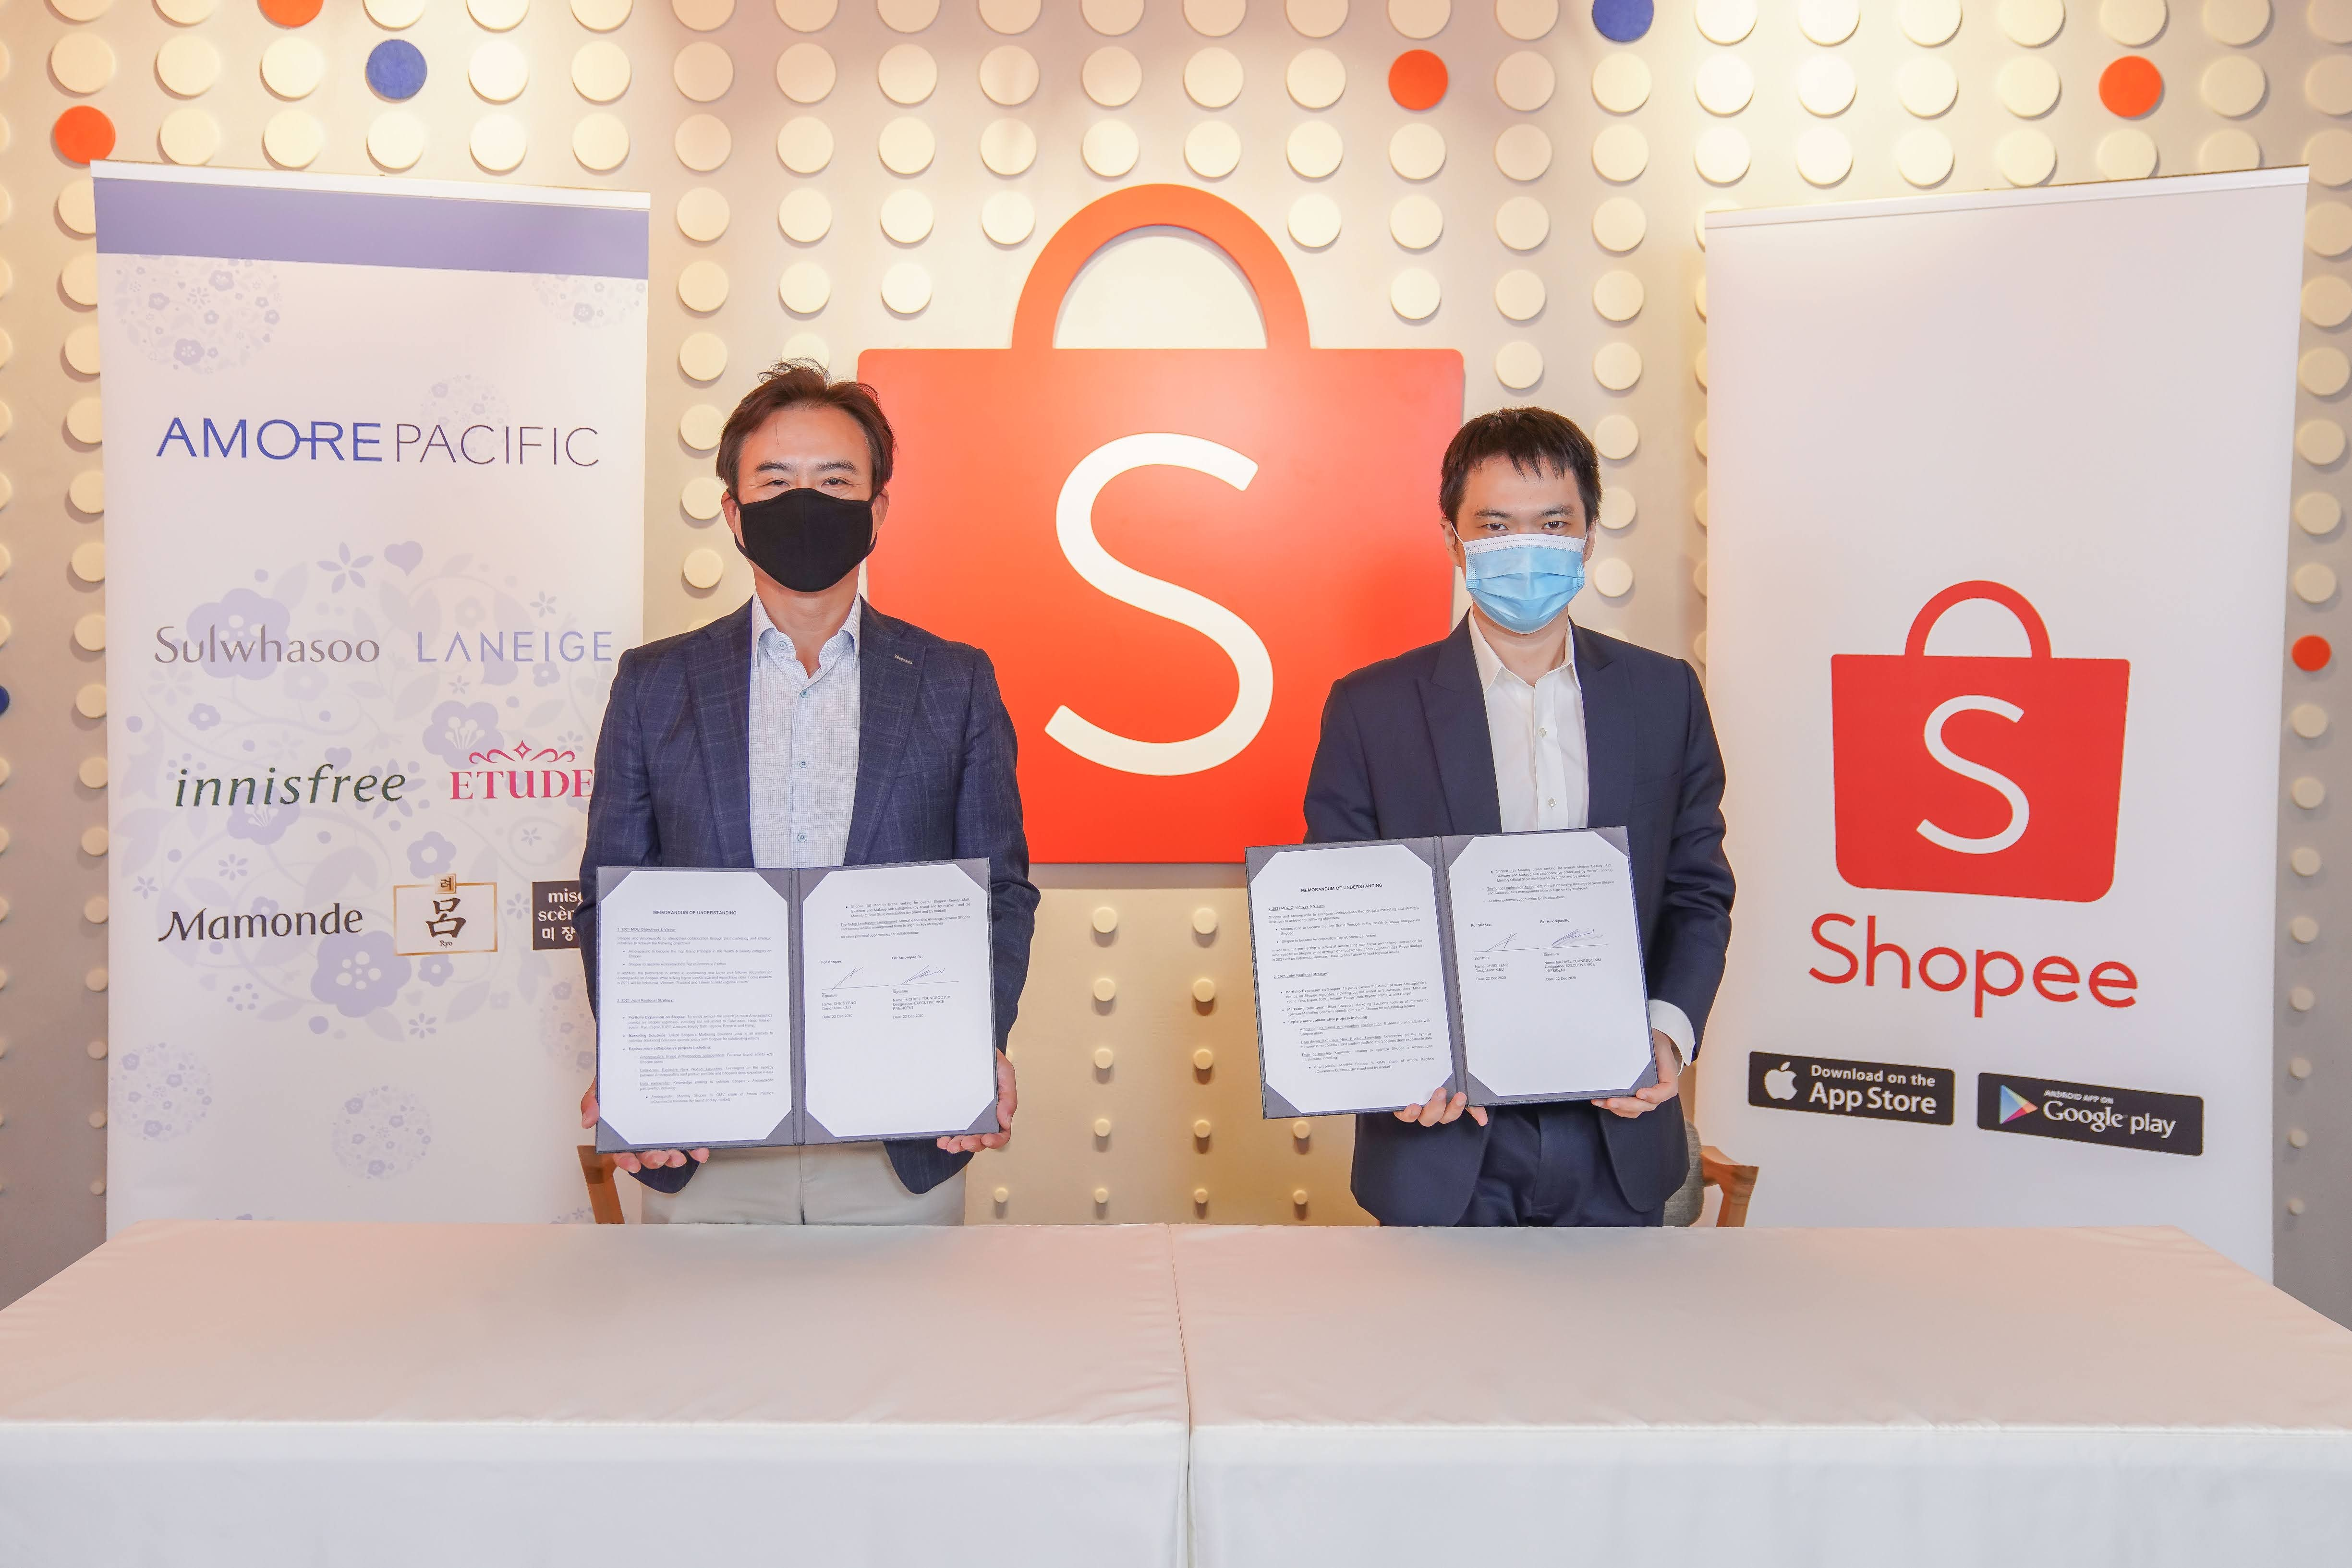 Michael Youngsoo Kim, Head of Amorepacific APAC Regional Headquarters and Mr Chris Feng, Chief Executive Officer, Shopee, signing the MOU at Shopee's Regional Headquarters in Singapore. Shopee.